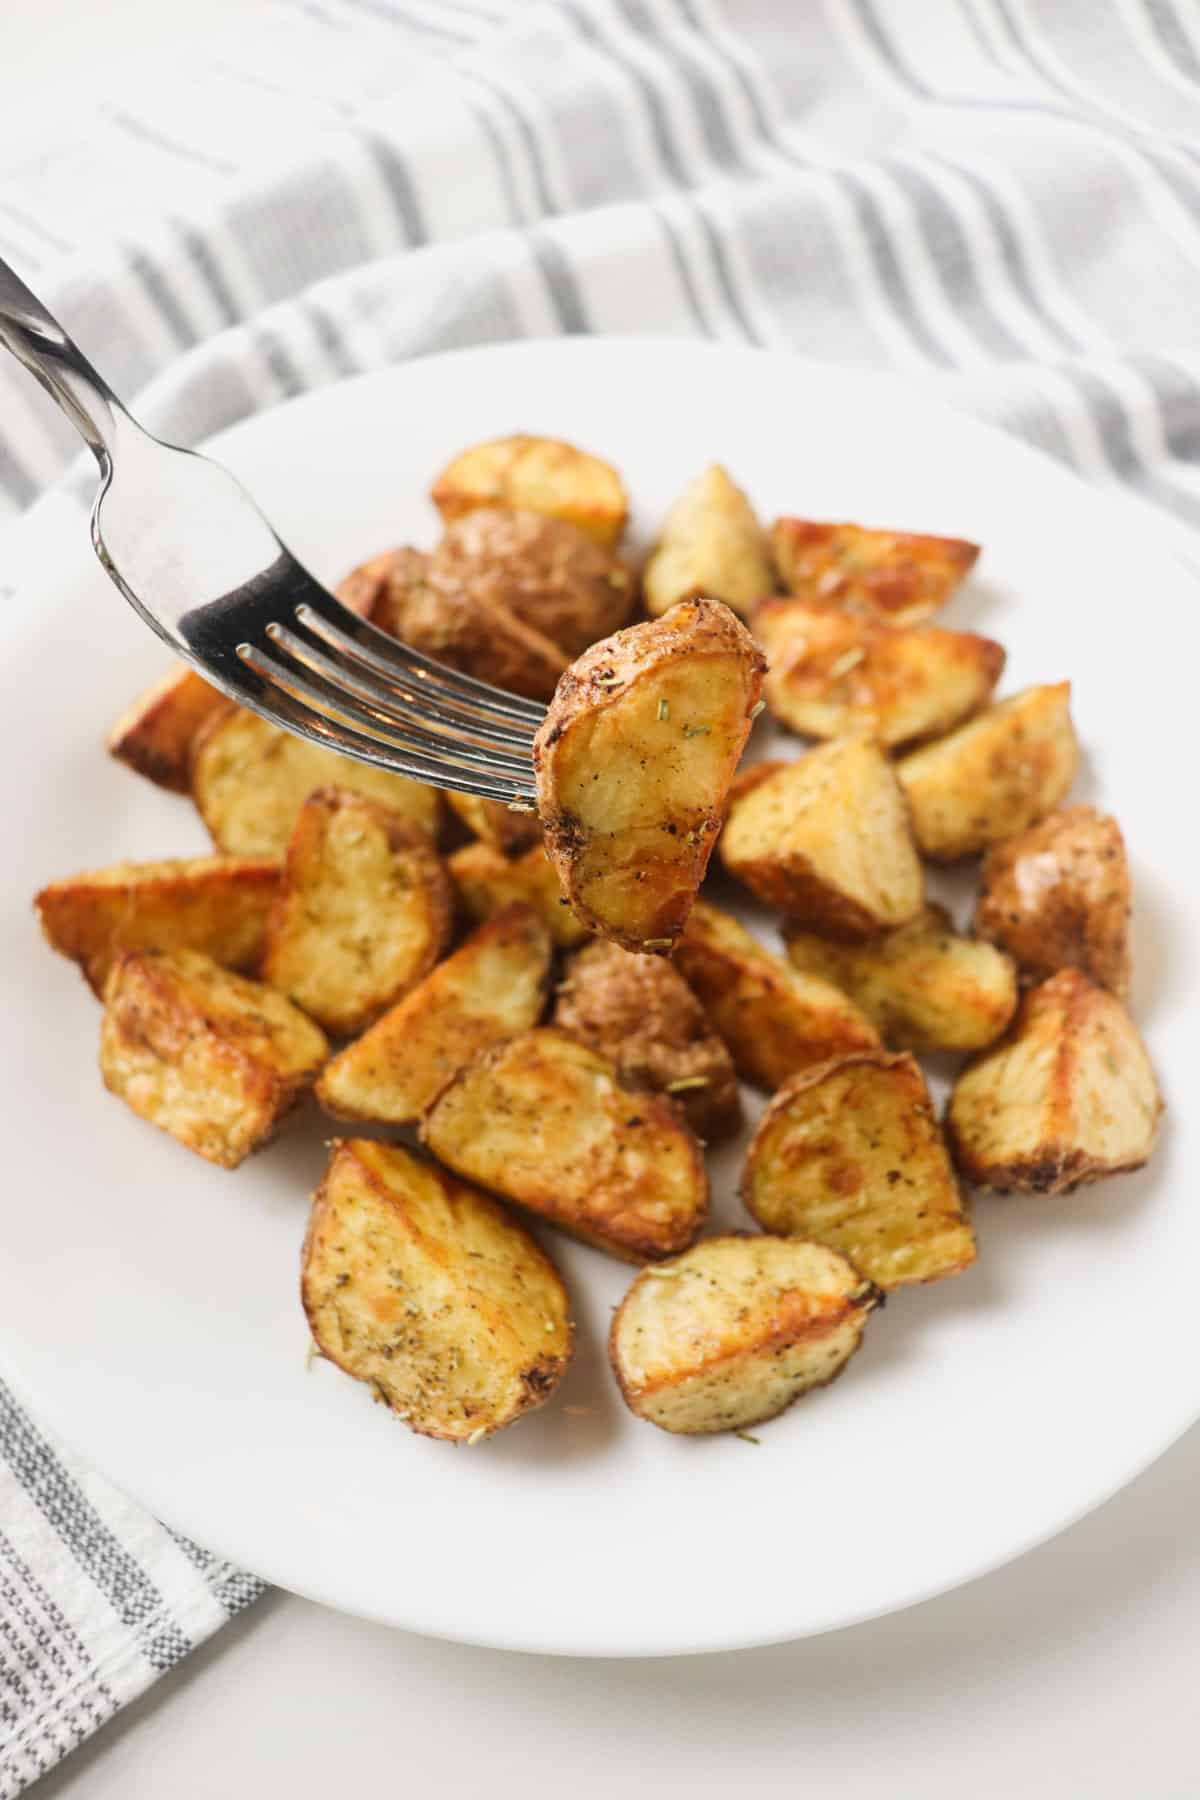 air fryer roasted potato piece on fork